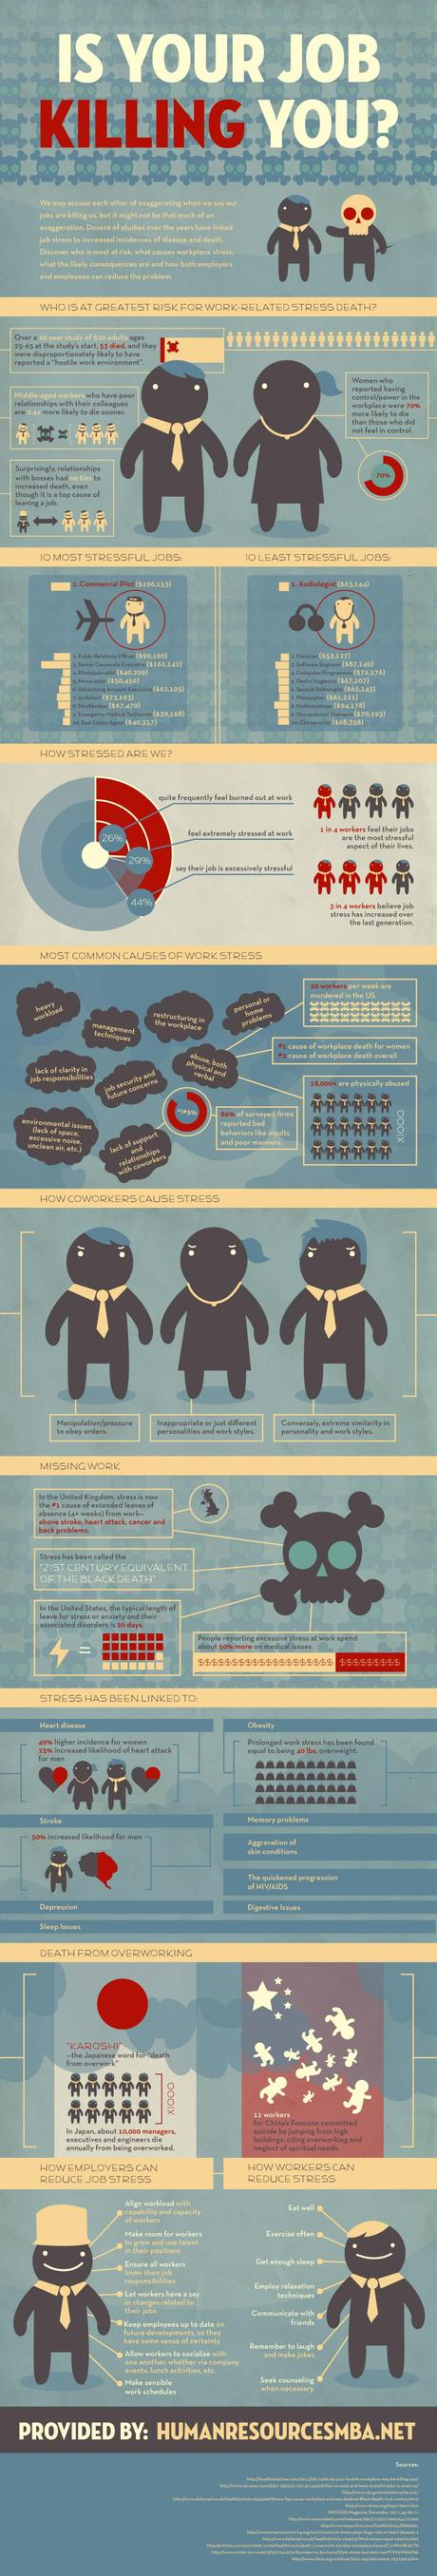 job stress Is Your Job Killing You: Infographic